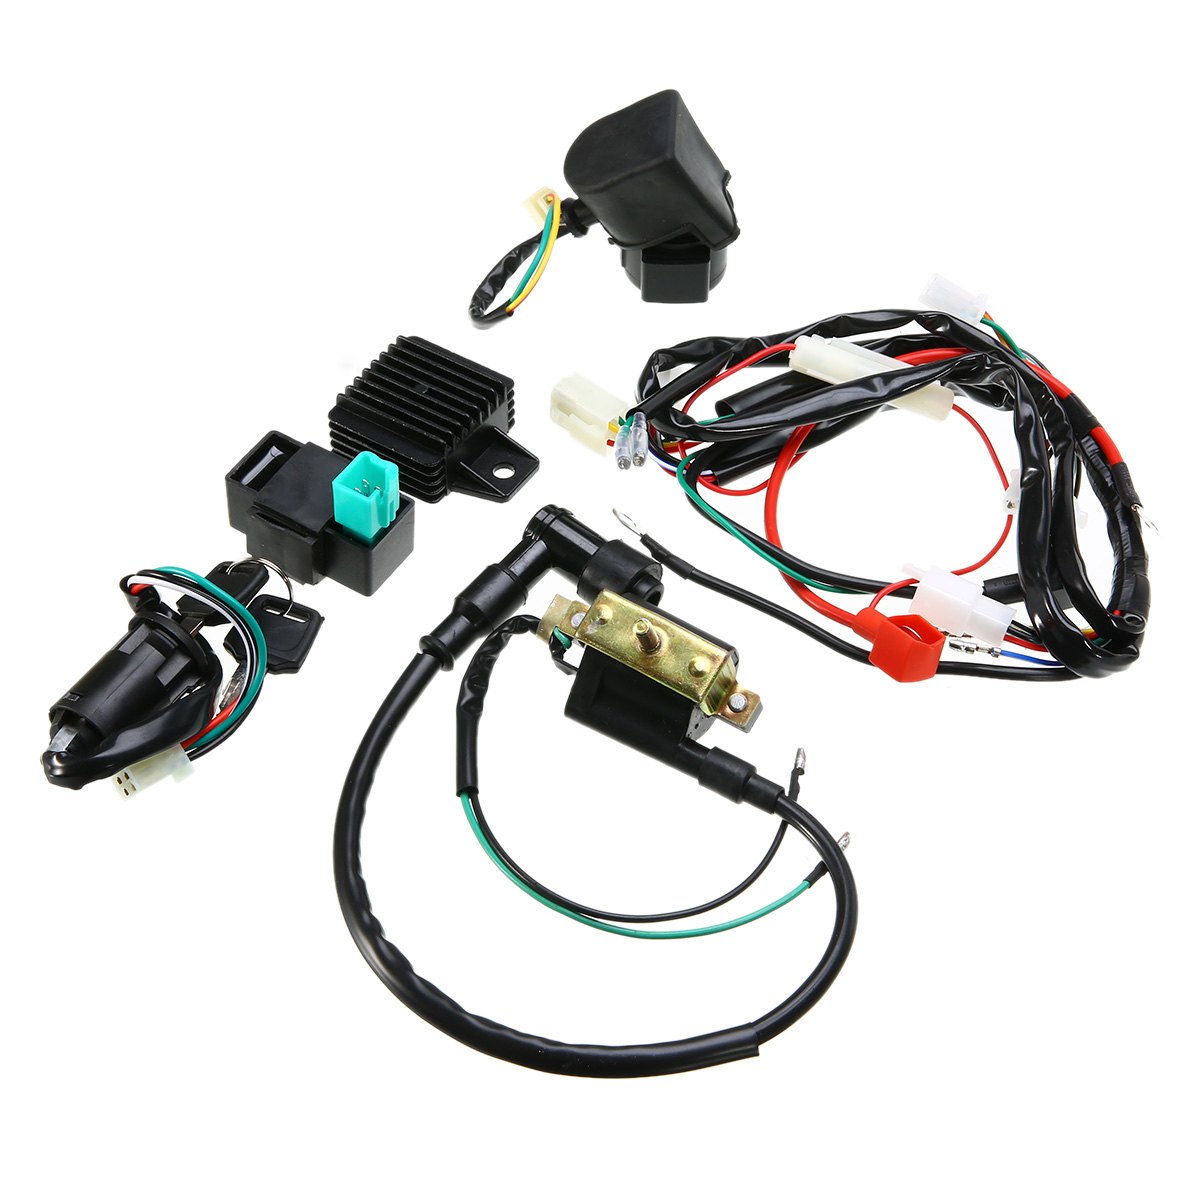 Motorcycle Ignition 50cc-125cc CDI Quad Wiring Harness Loom Solenoid Coil Rectifier for 50cc 110cc 125cc PIT Dirt Bike ATV